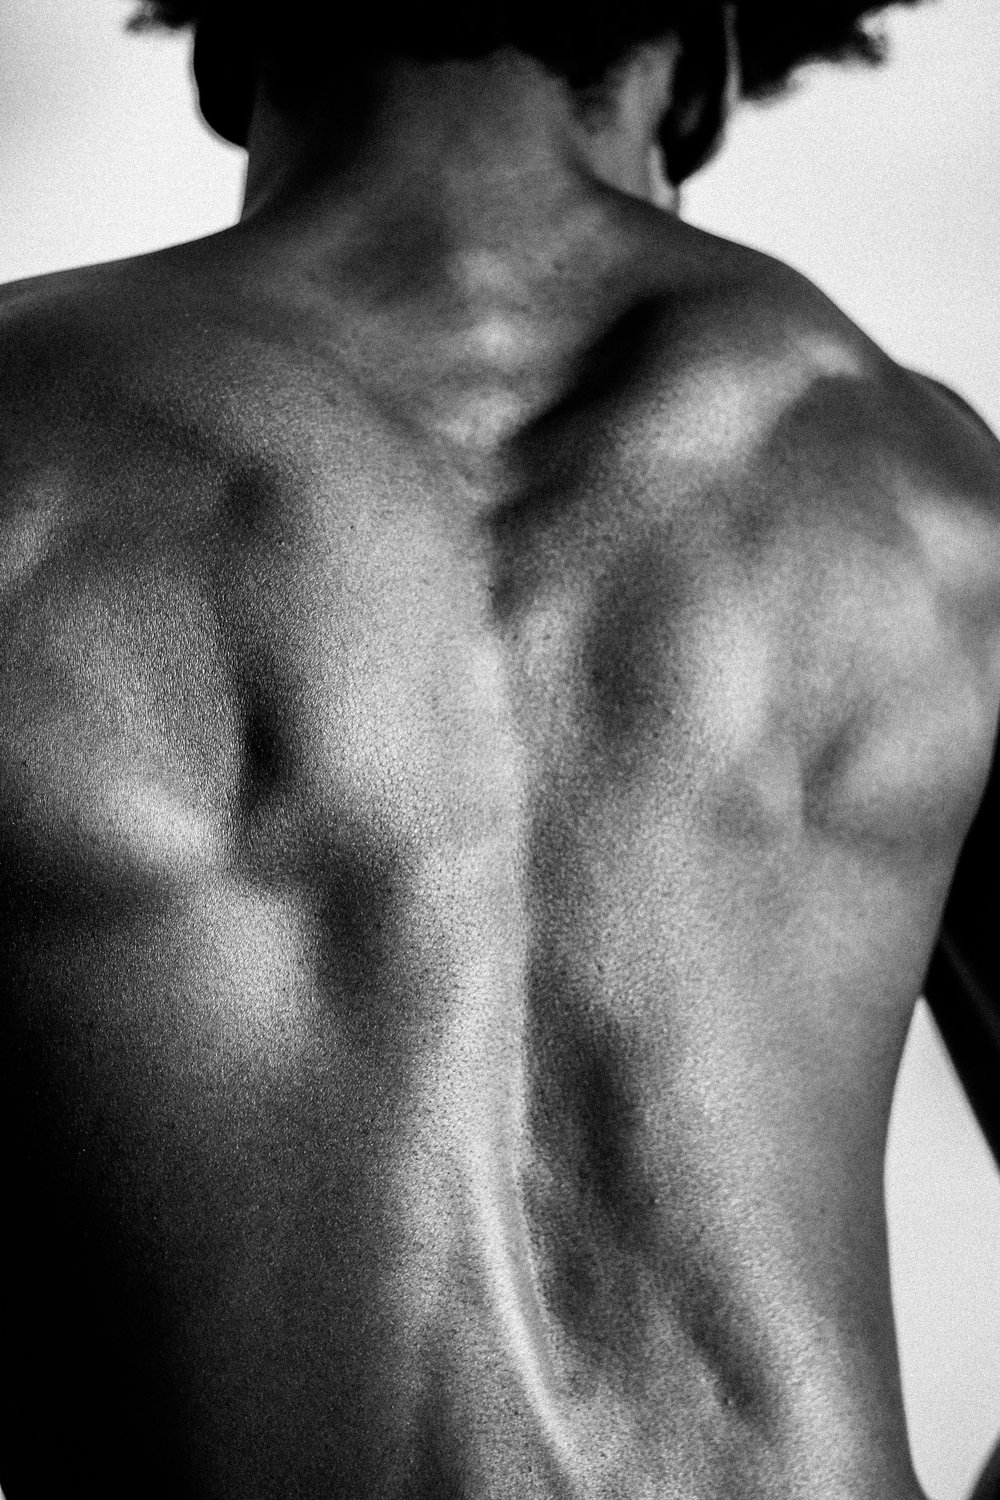 [Image Description: a black and white photo of the tensed mucscles and upper back and spine of a black man]